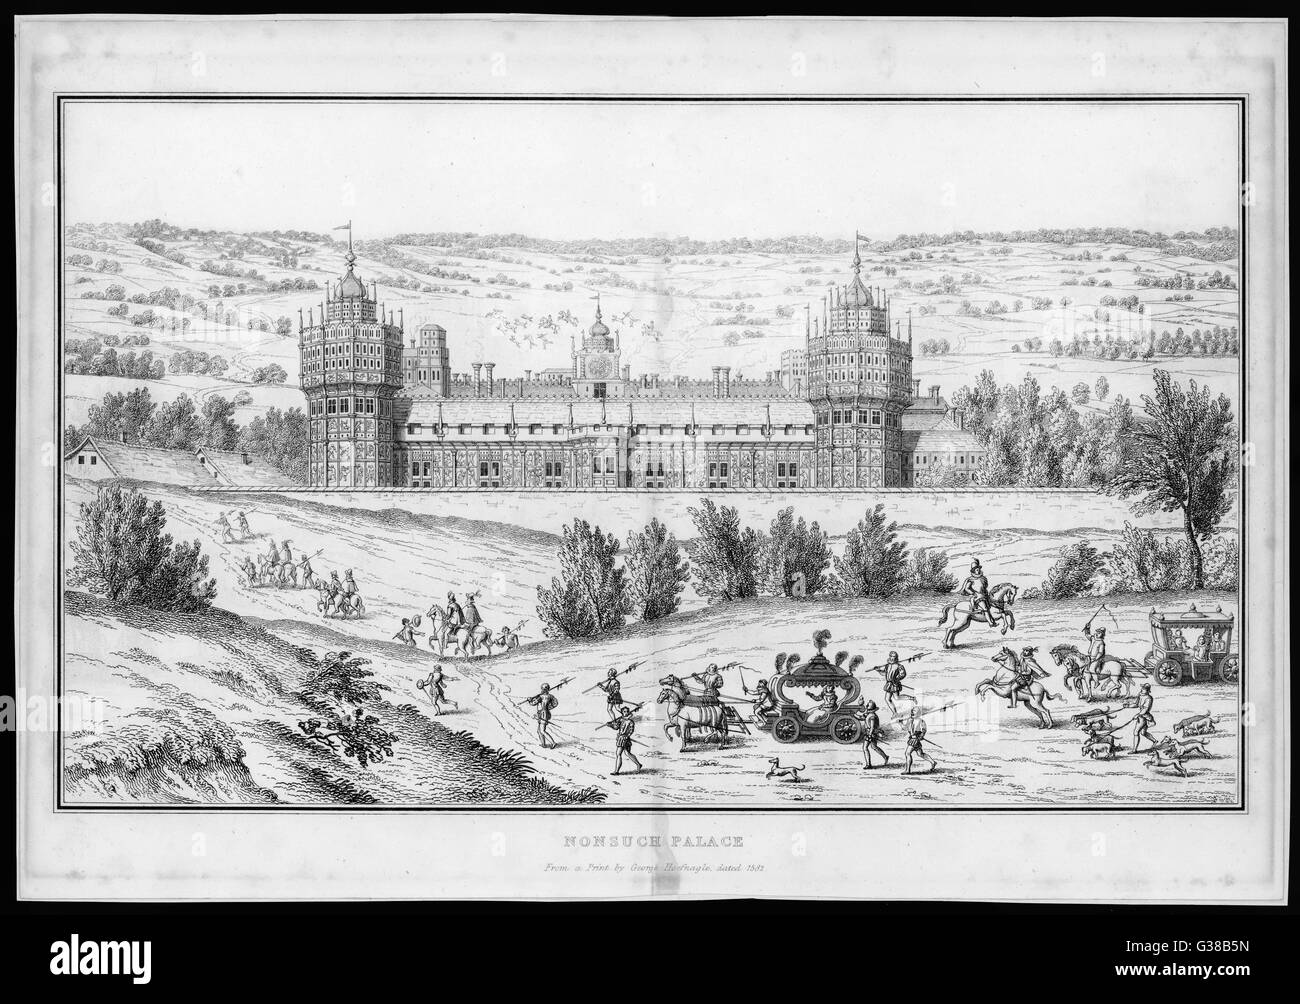 The palace as seen during the  reign of Elizabeth I         Date: 1582 - Stock Image